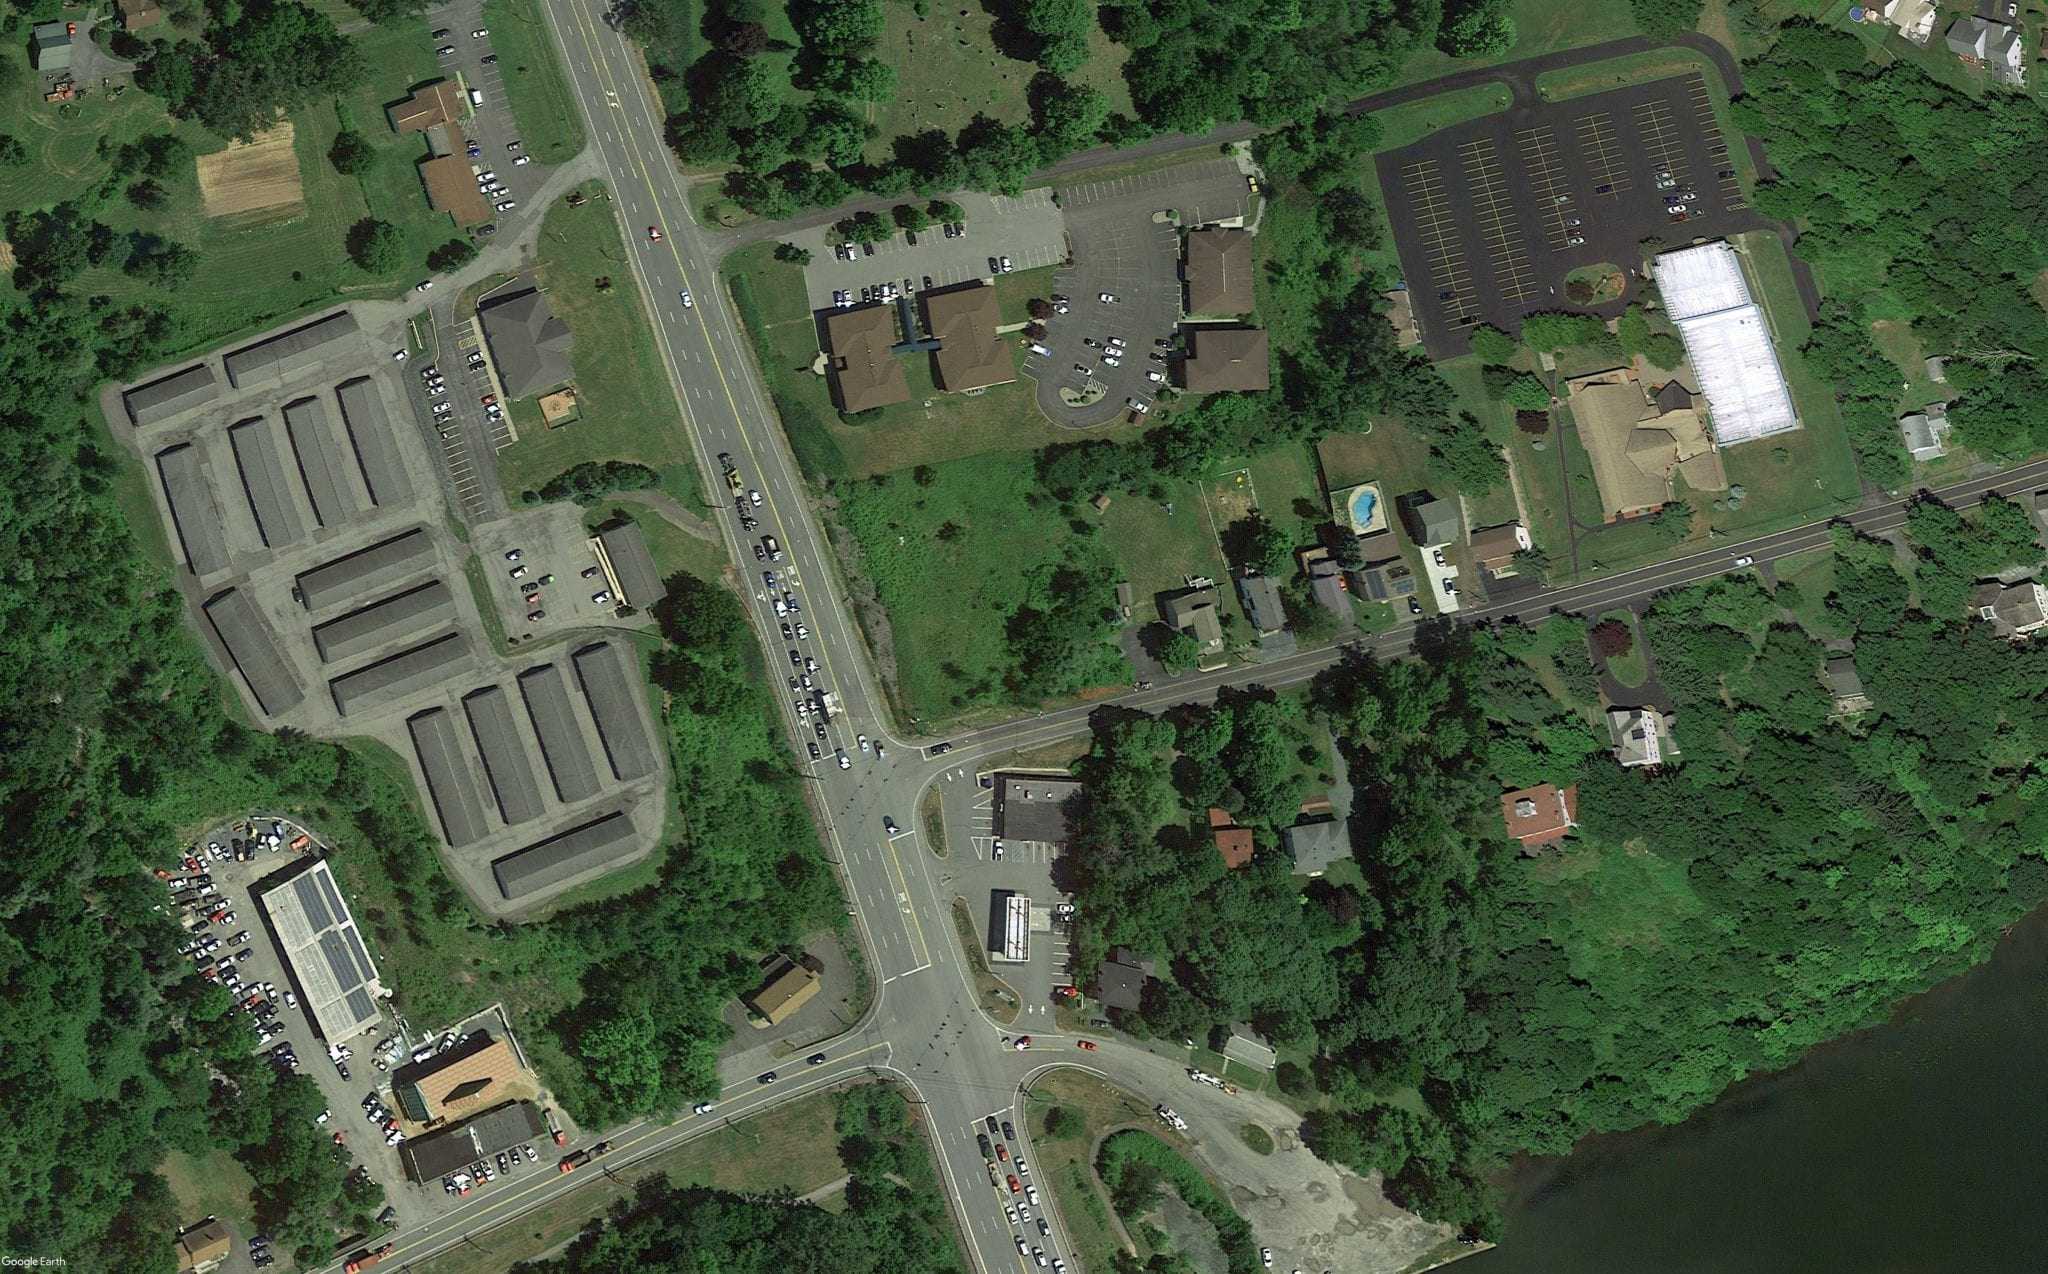 Aerial View For Sale For Lease of 0 Church Hill Road, Clifton Park NY 12065